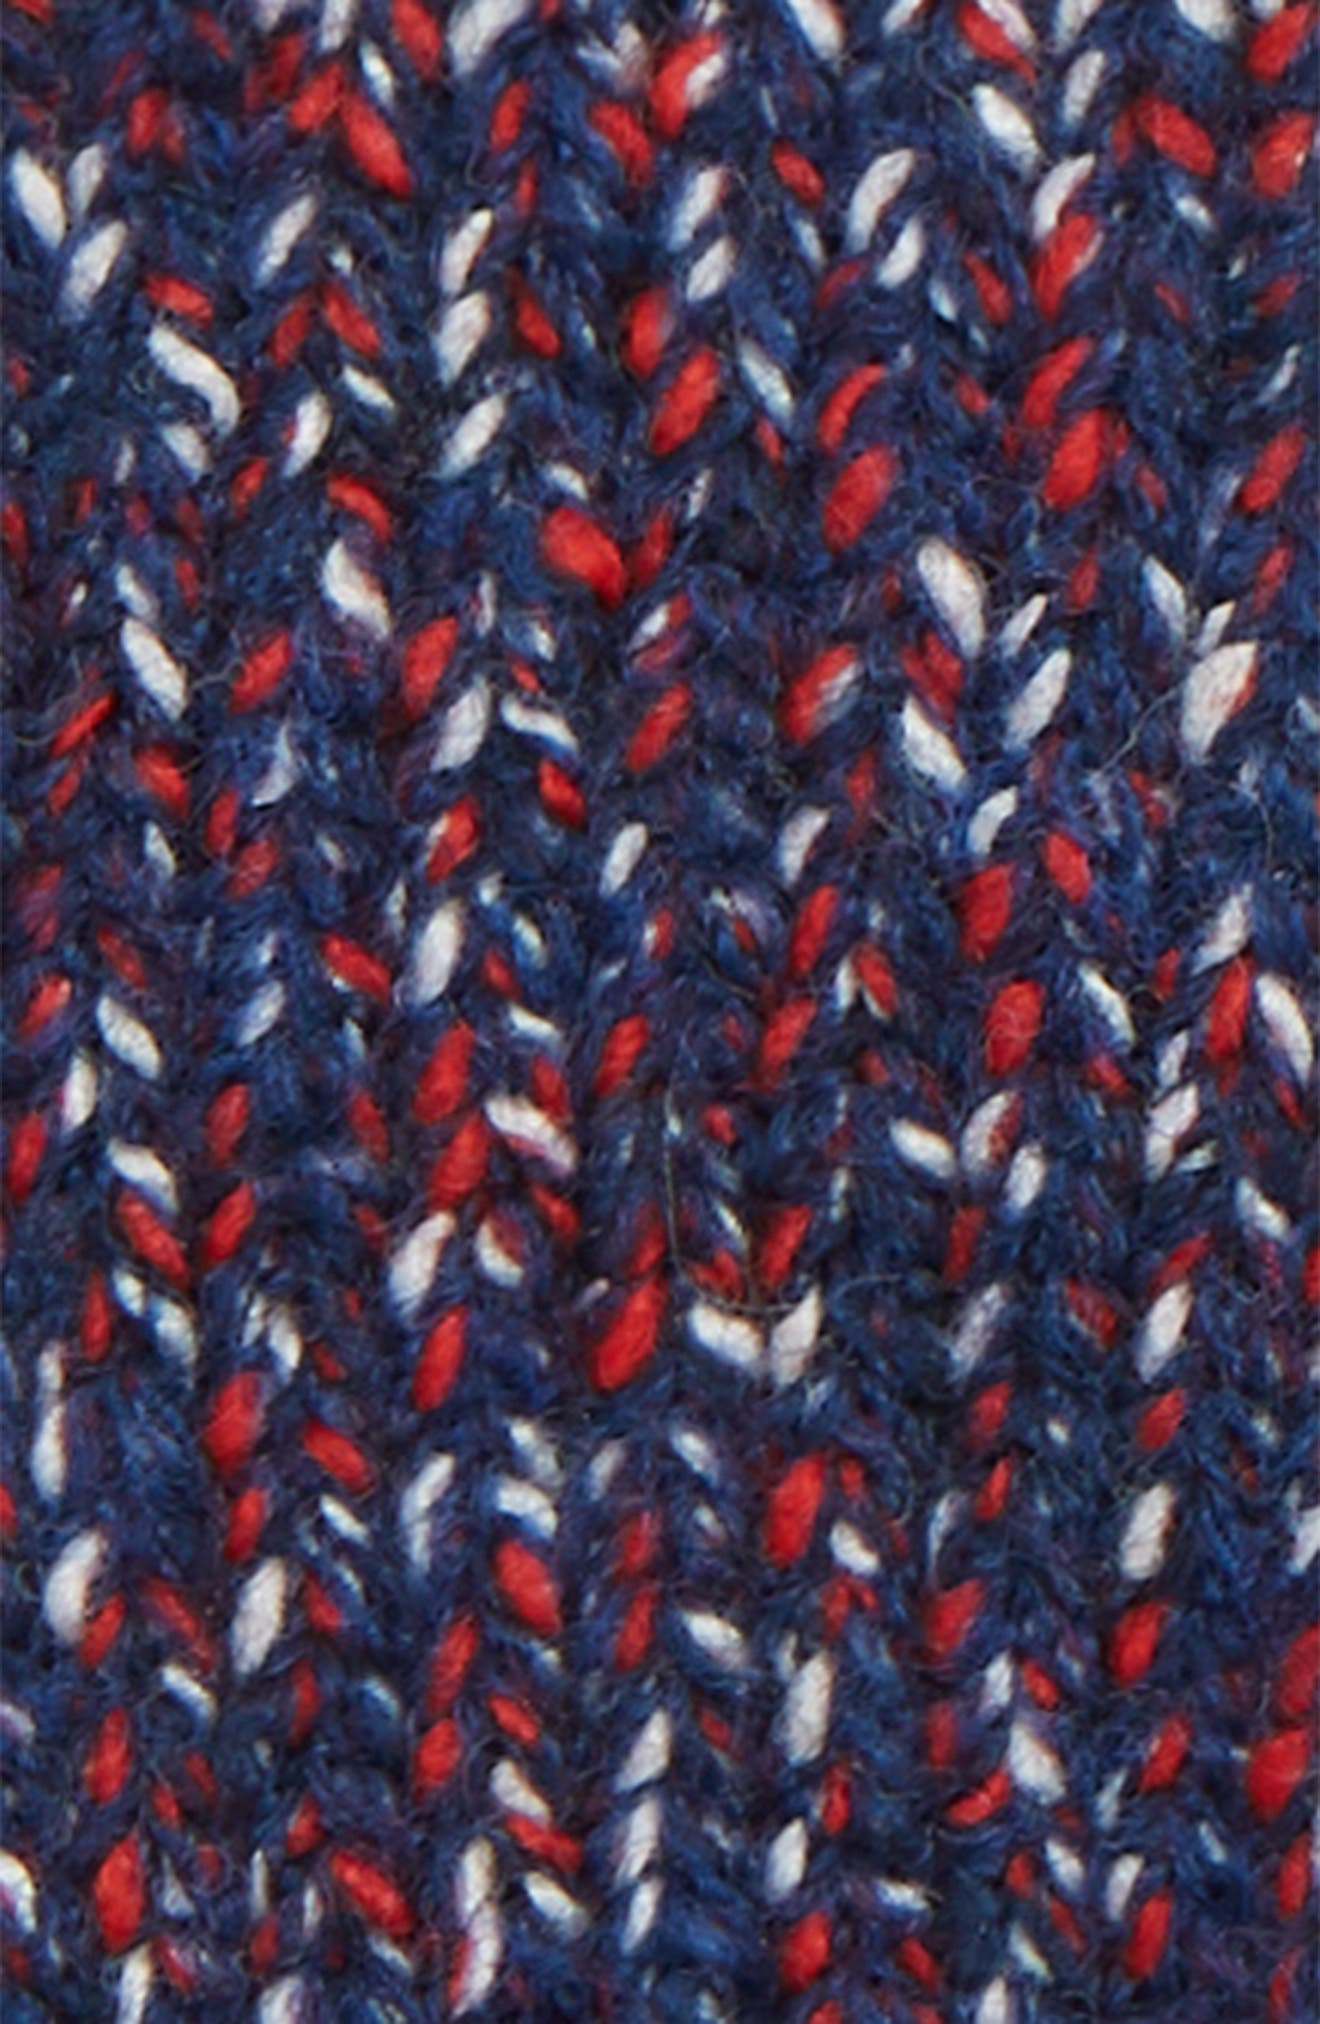 Cheryl Convertible Knit Mittens,                             Alternate thumbnail 2, color,                             NAVY/ RED